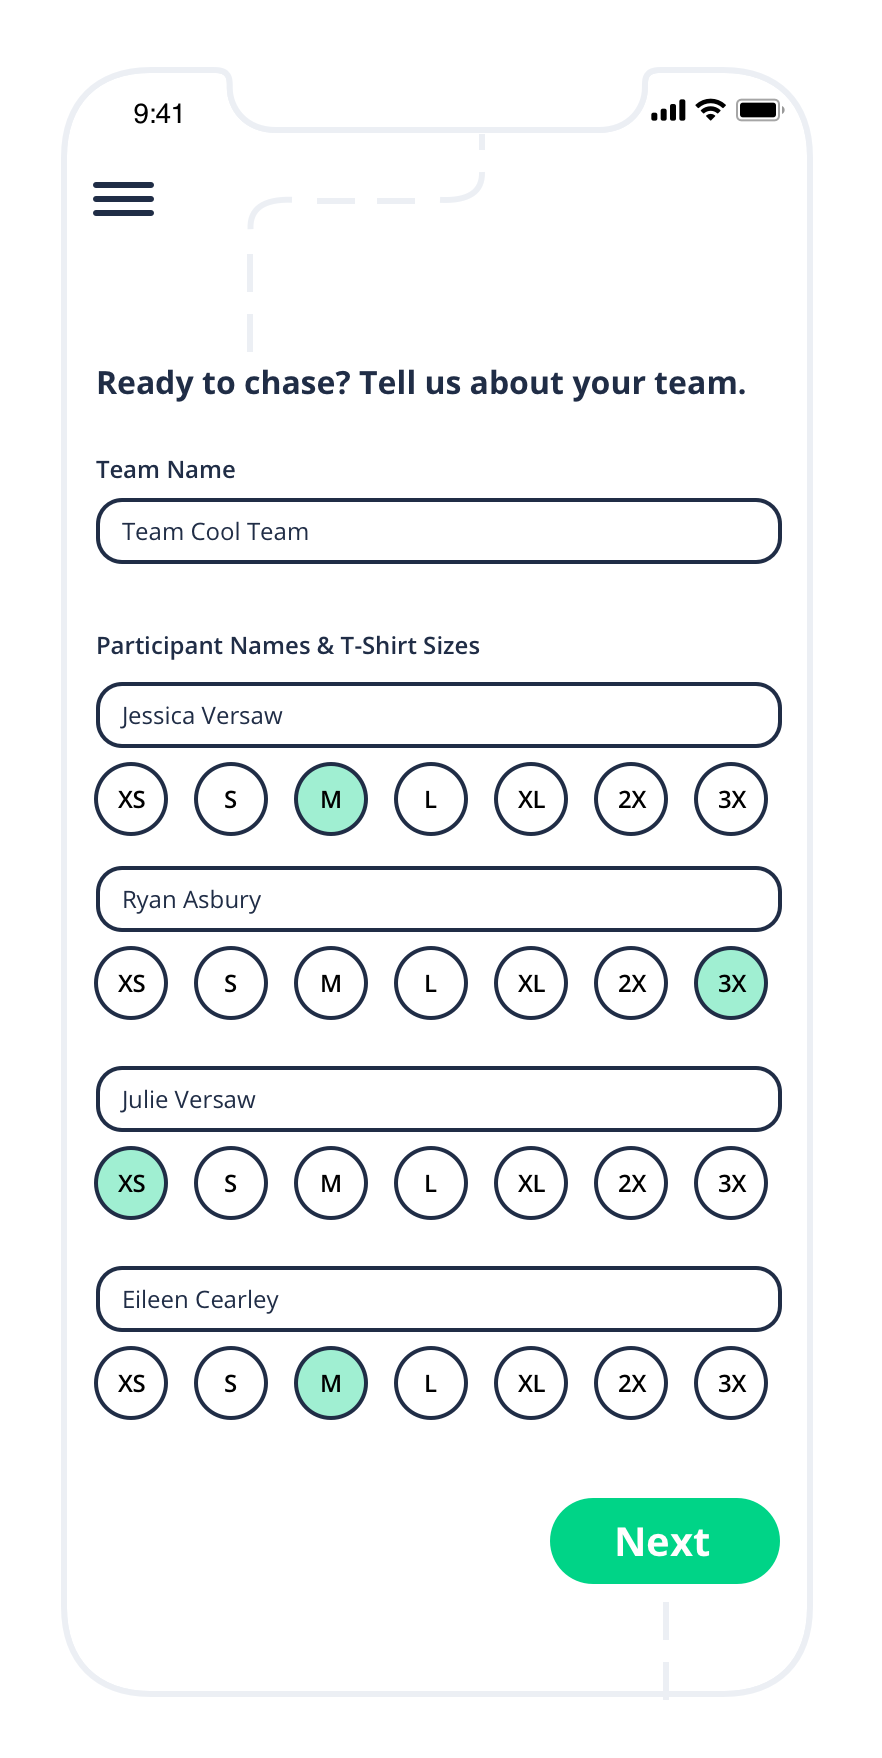 001 - Signup Page 2 Second Pass Copy.png